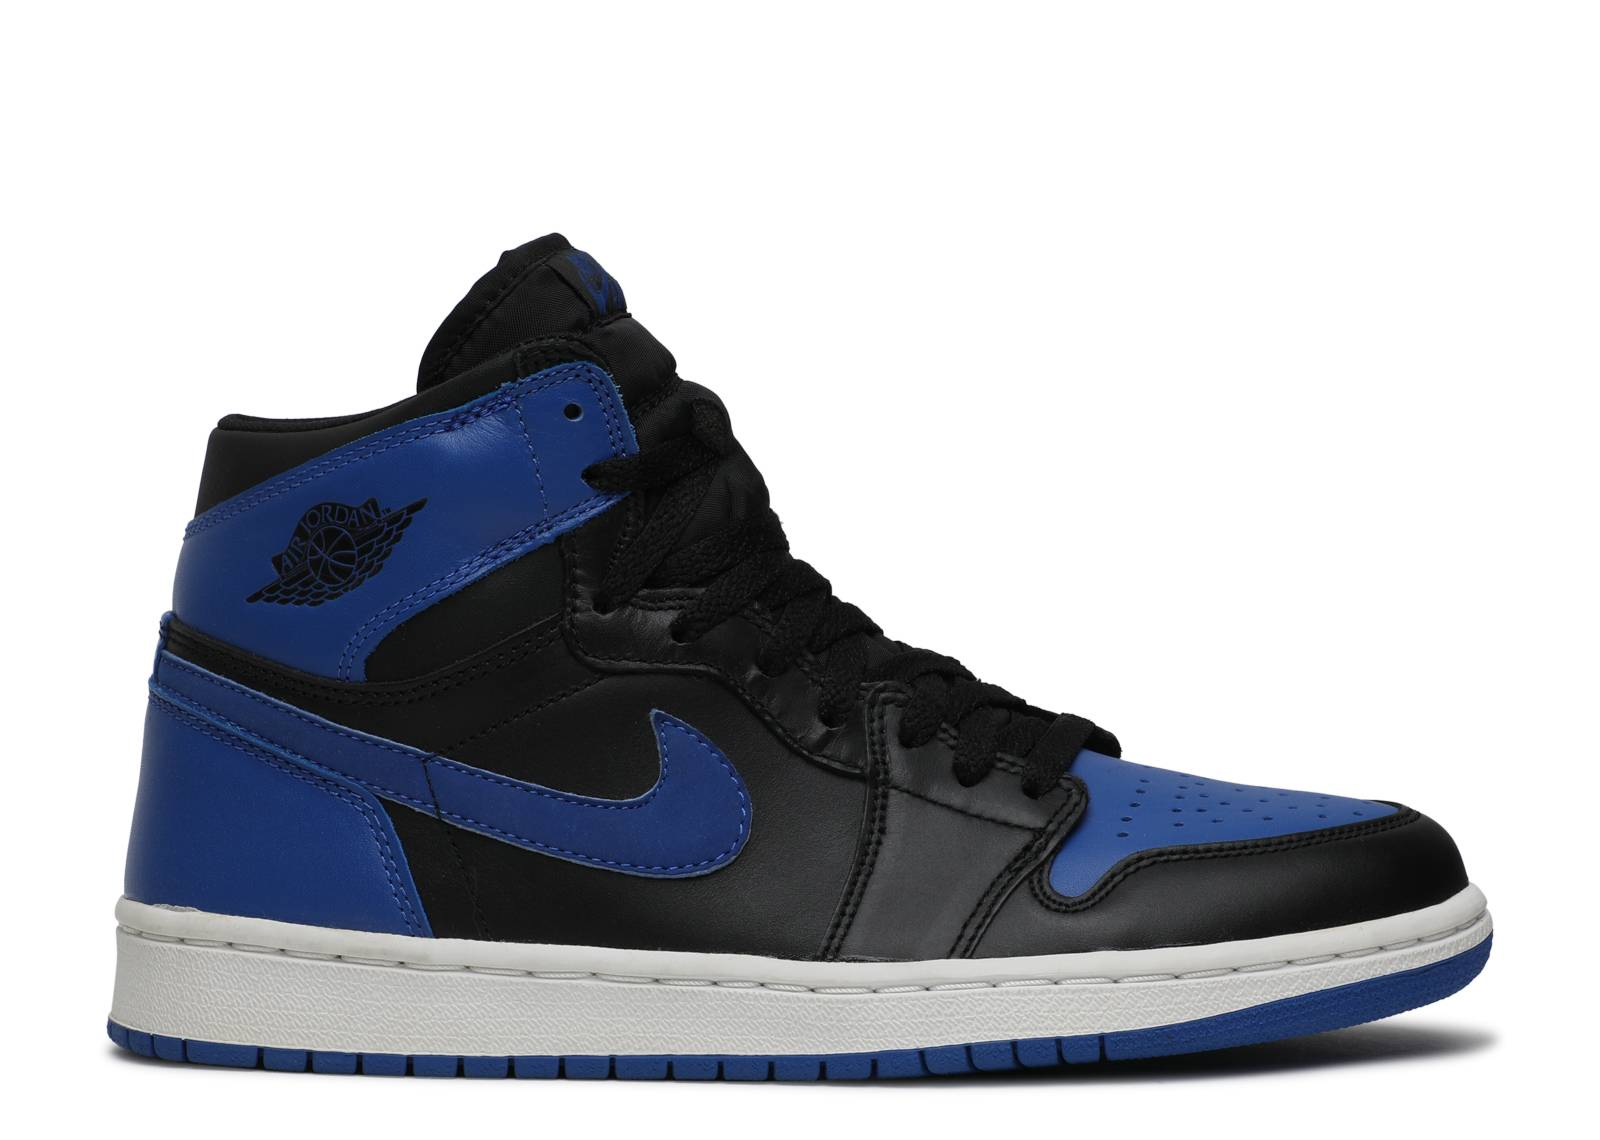 royal blue jordan shoes